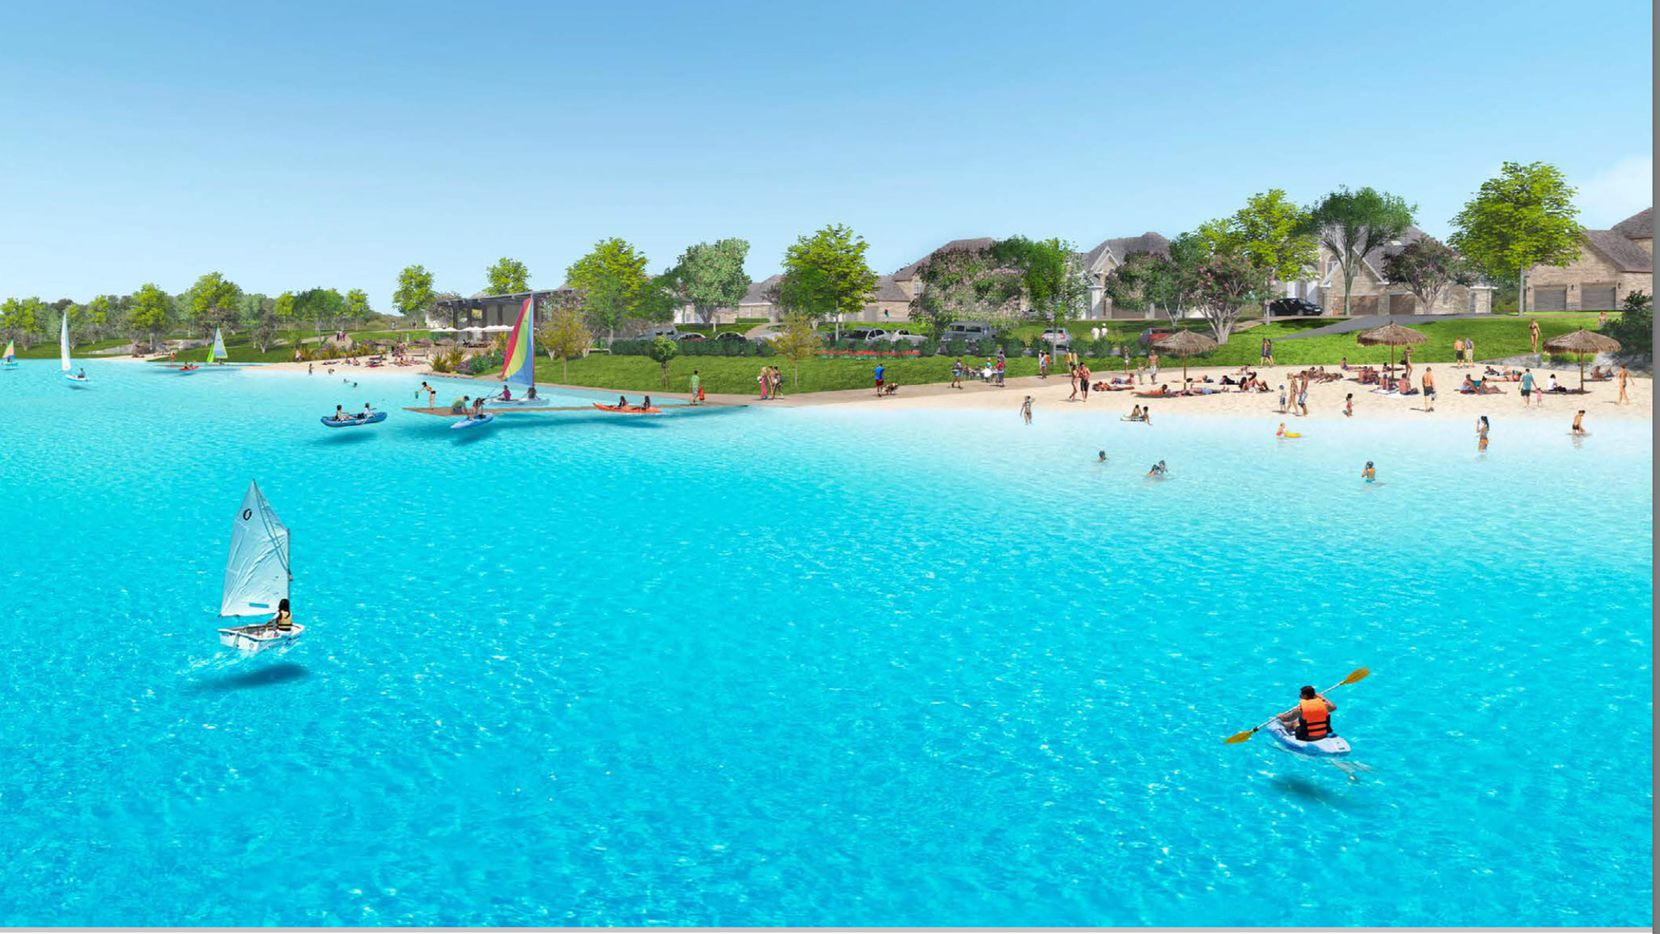 The Crystal Lagoon in Prosper's Windsong Ranch community will open this summer.